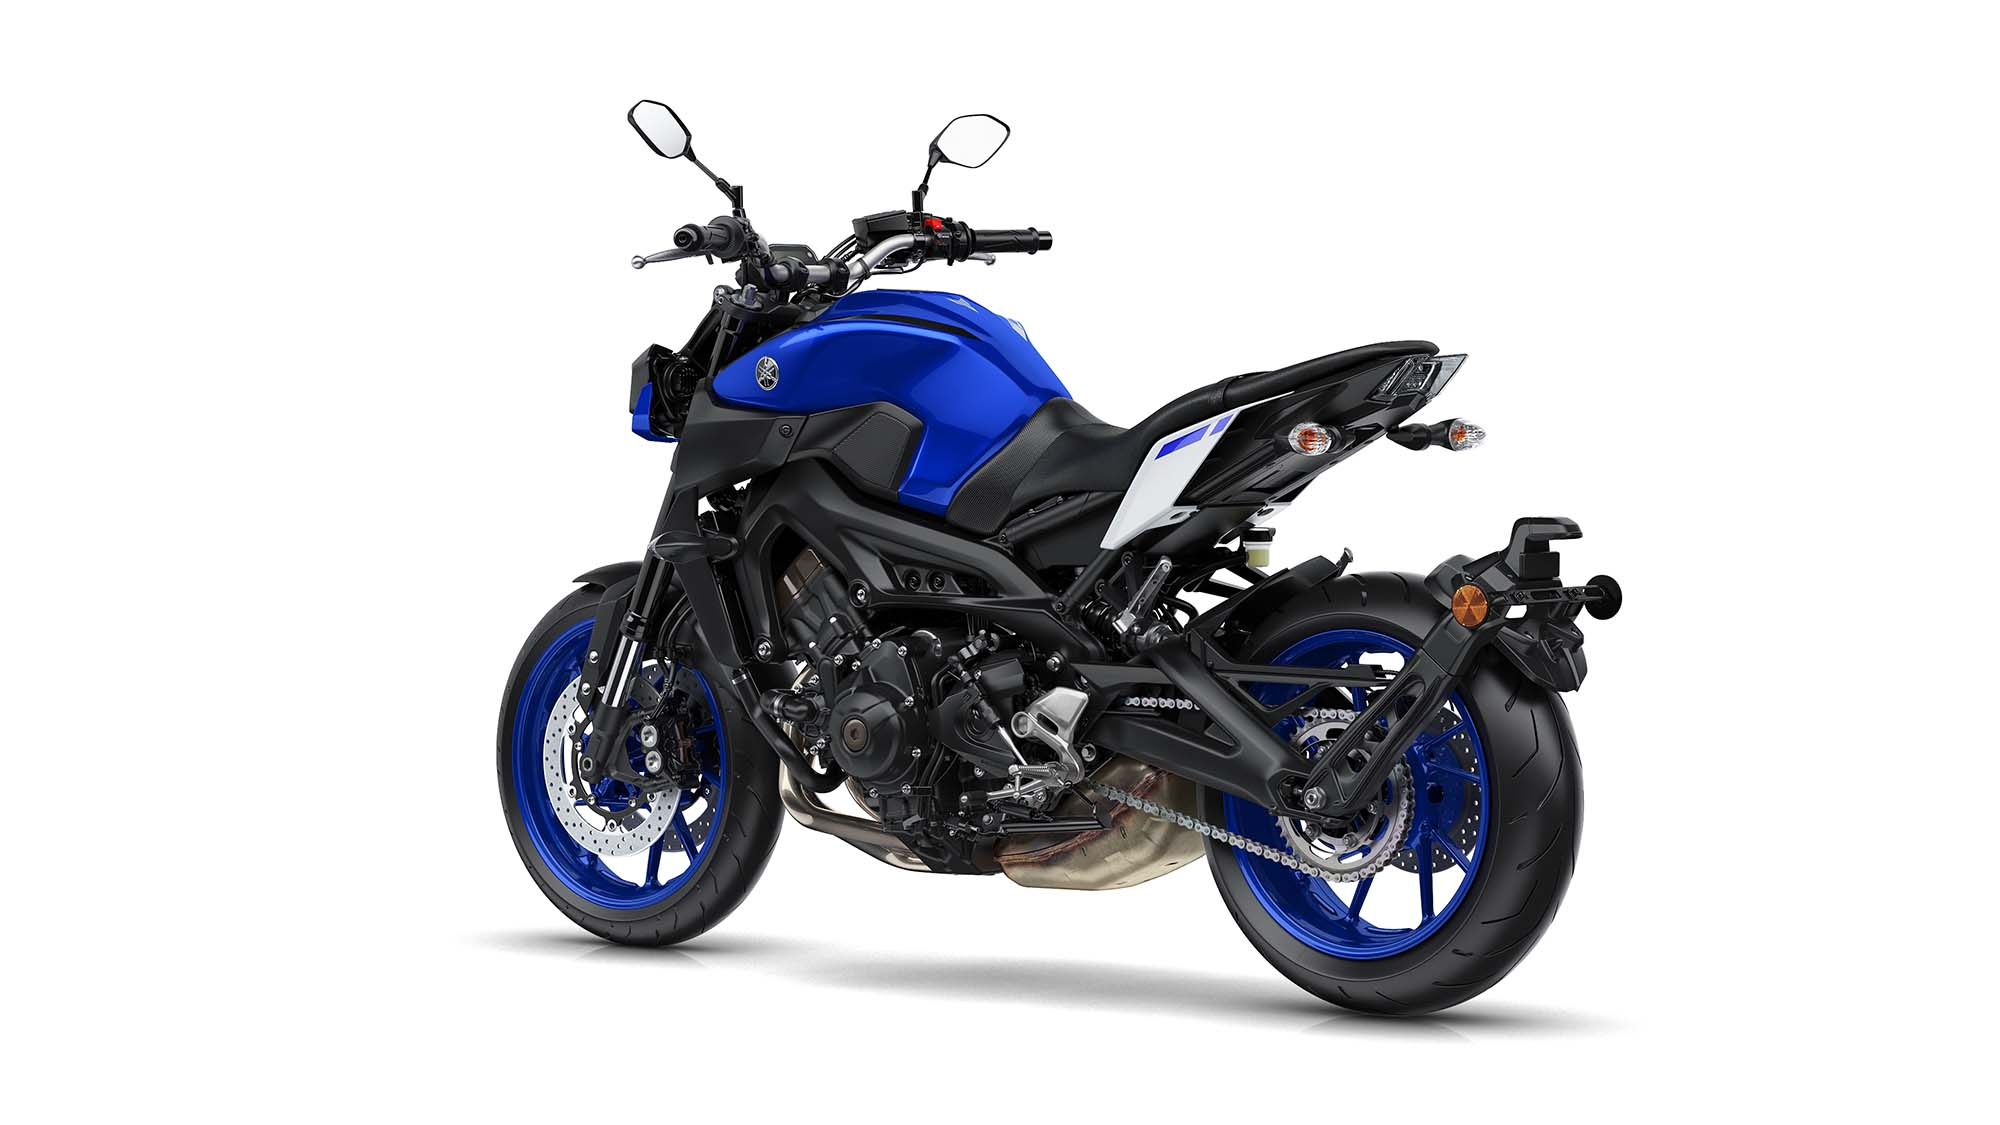 Yamaha Fz 09 >> 2017 Yamaha MT-09 Gets Facelift & More